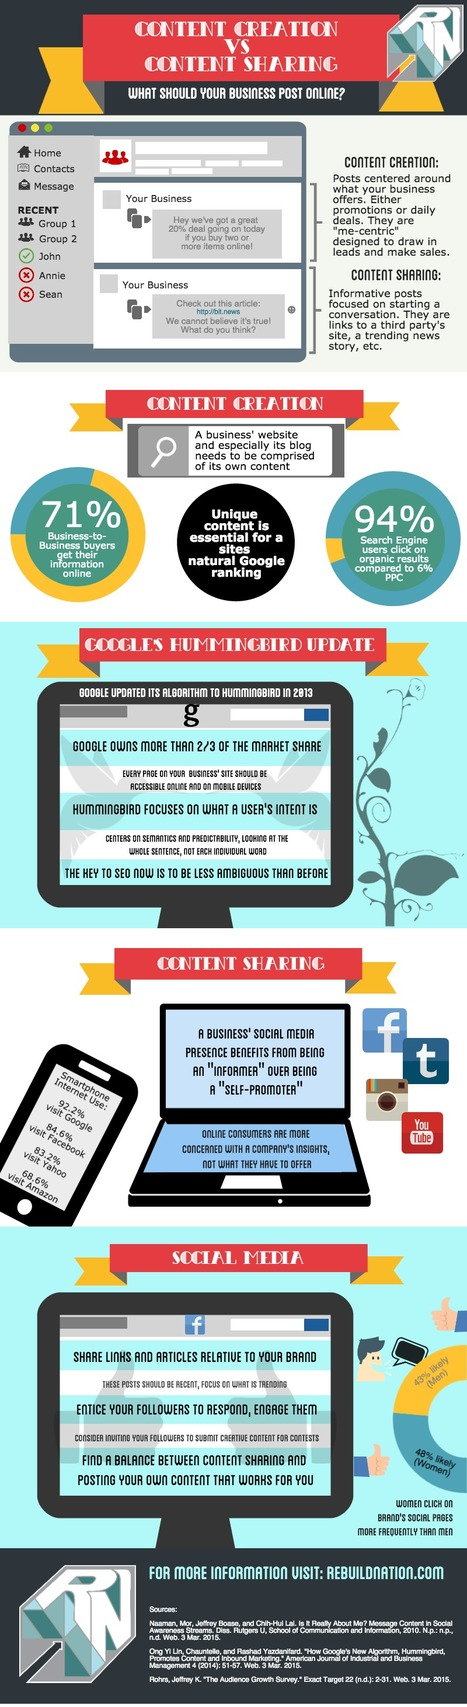 Should you Use Content Creation or Content Sharing? [Infographic] | visualizing social media | Scoop.it